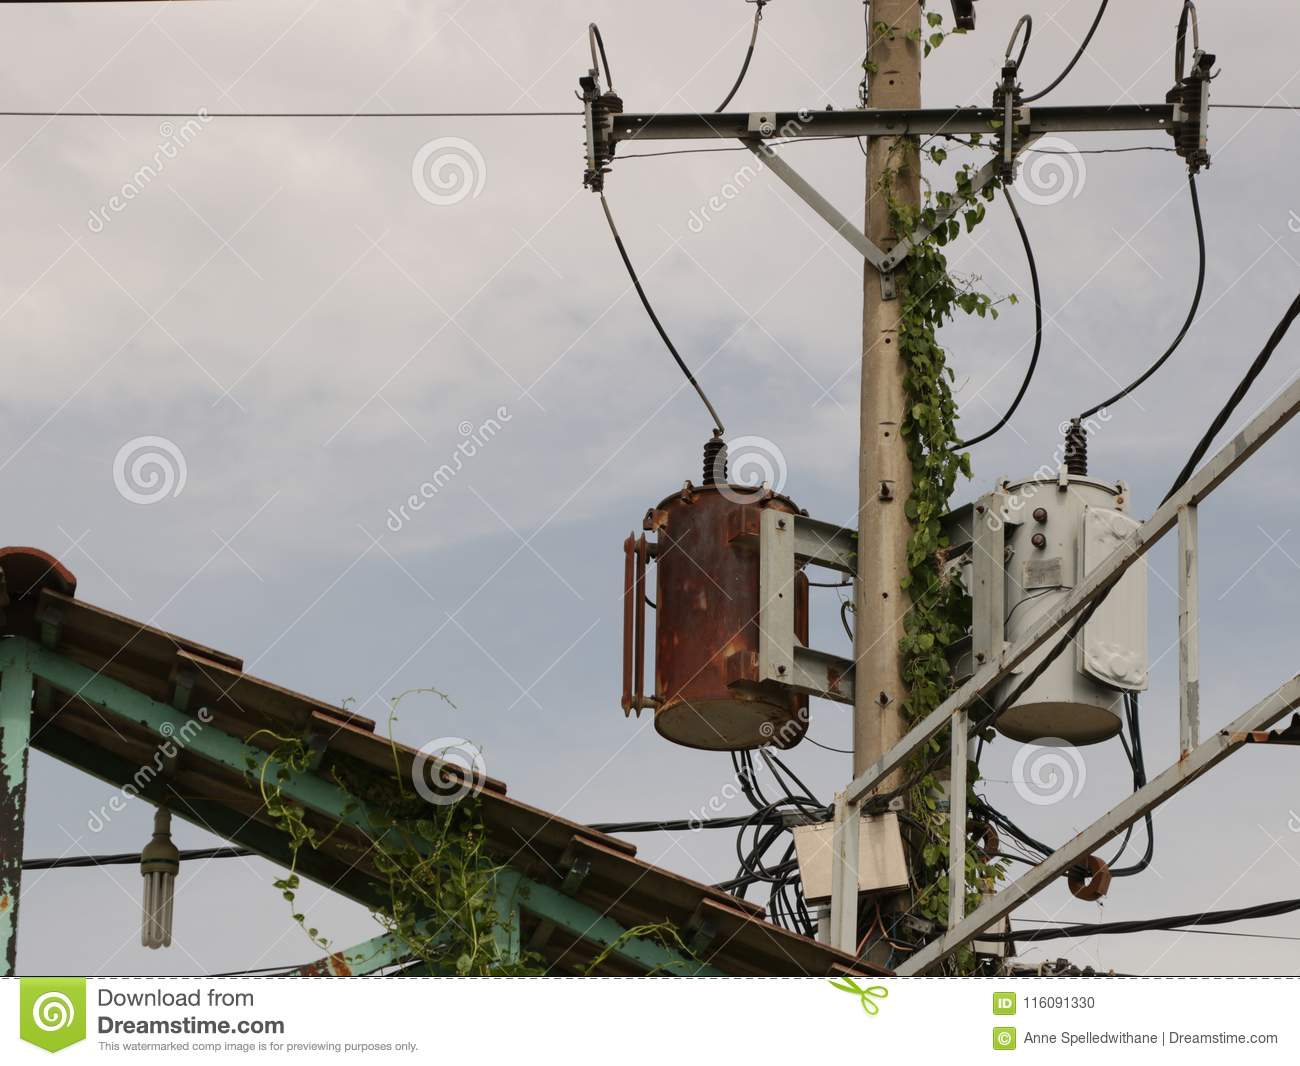 Electric Box Wires Pole Stock Photos Royalty Free Images Wiring Sky